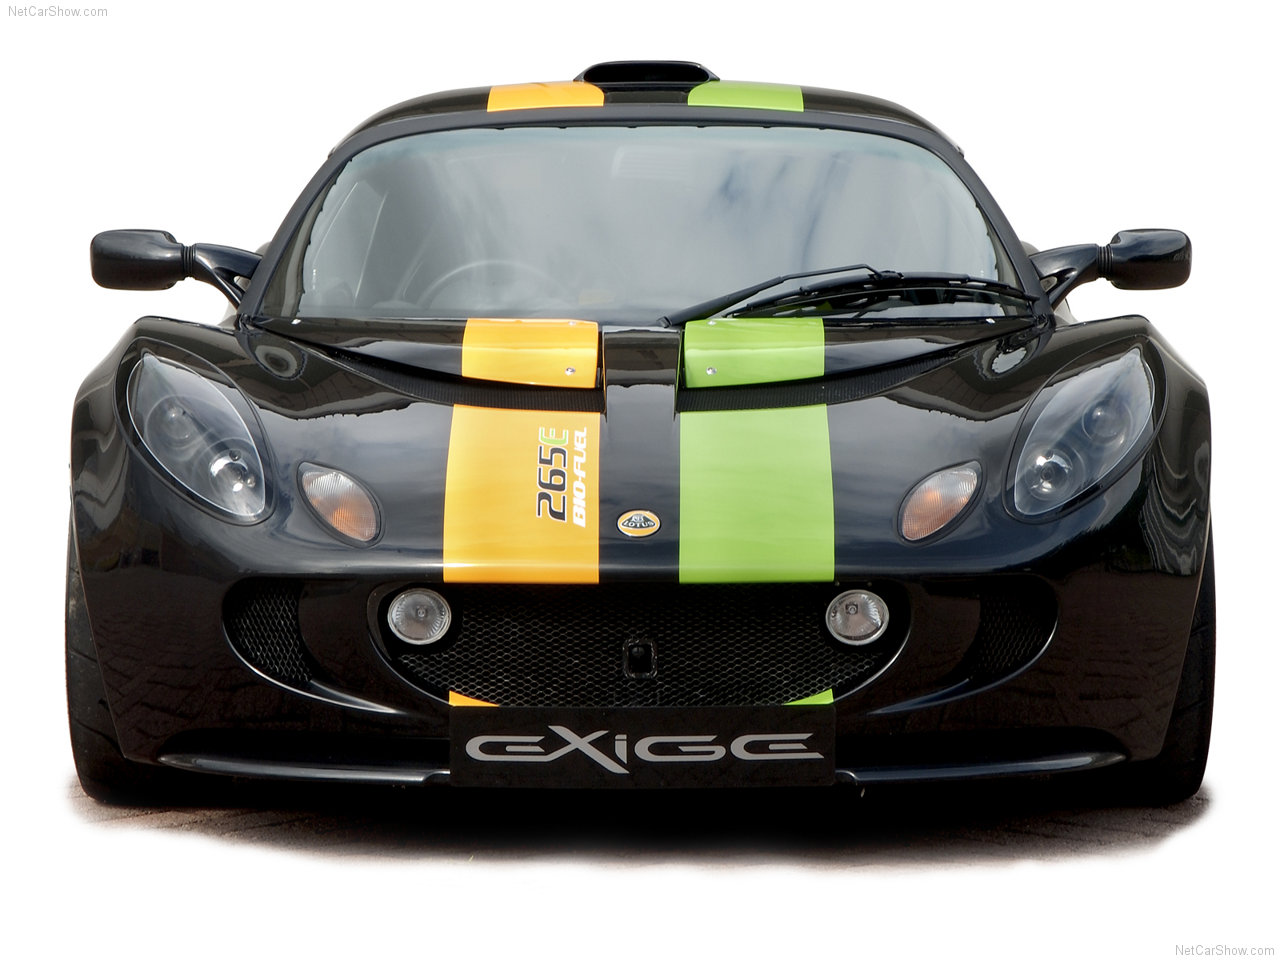 2006 Lotus Exige 265E Concept | Automobile